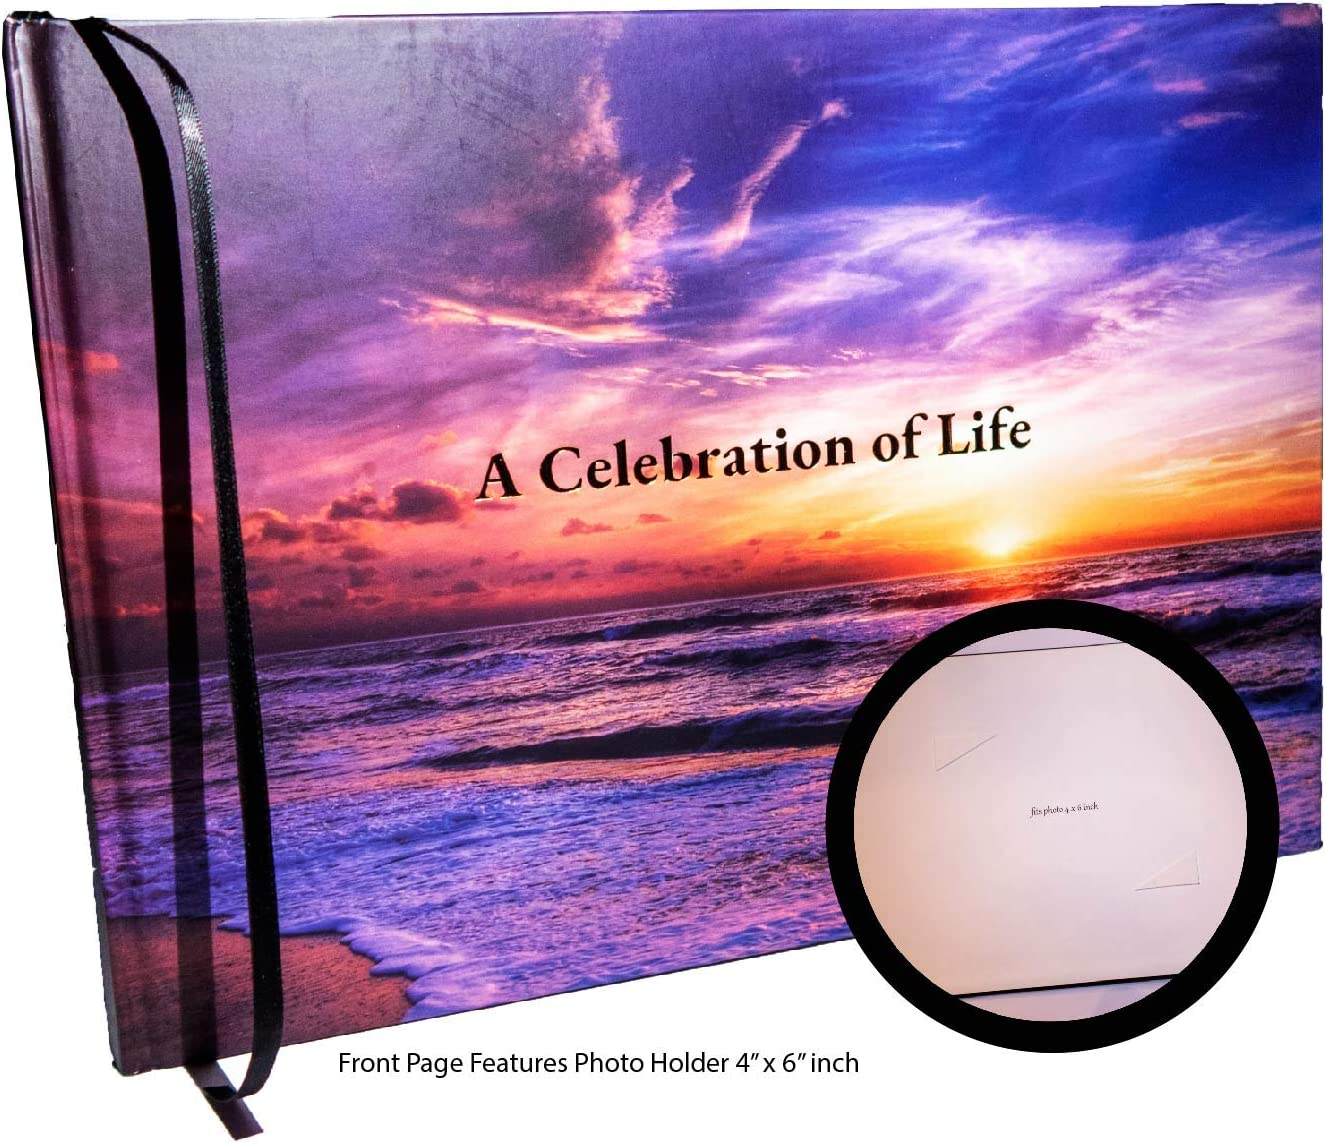 LifeToo Funeral Guest Book   Memorial Guest Book - Hardcover :A Celebration of Life   Spine: in Loving Memory   Ocean Sunset Theme w/ 4 x 6 inch Photo Pocket